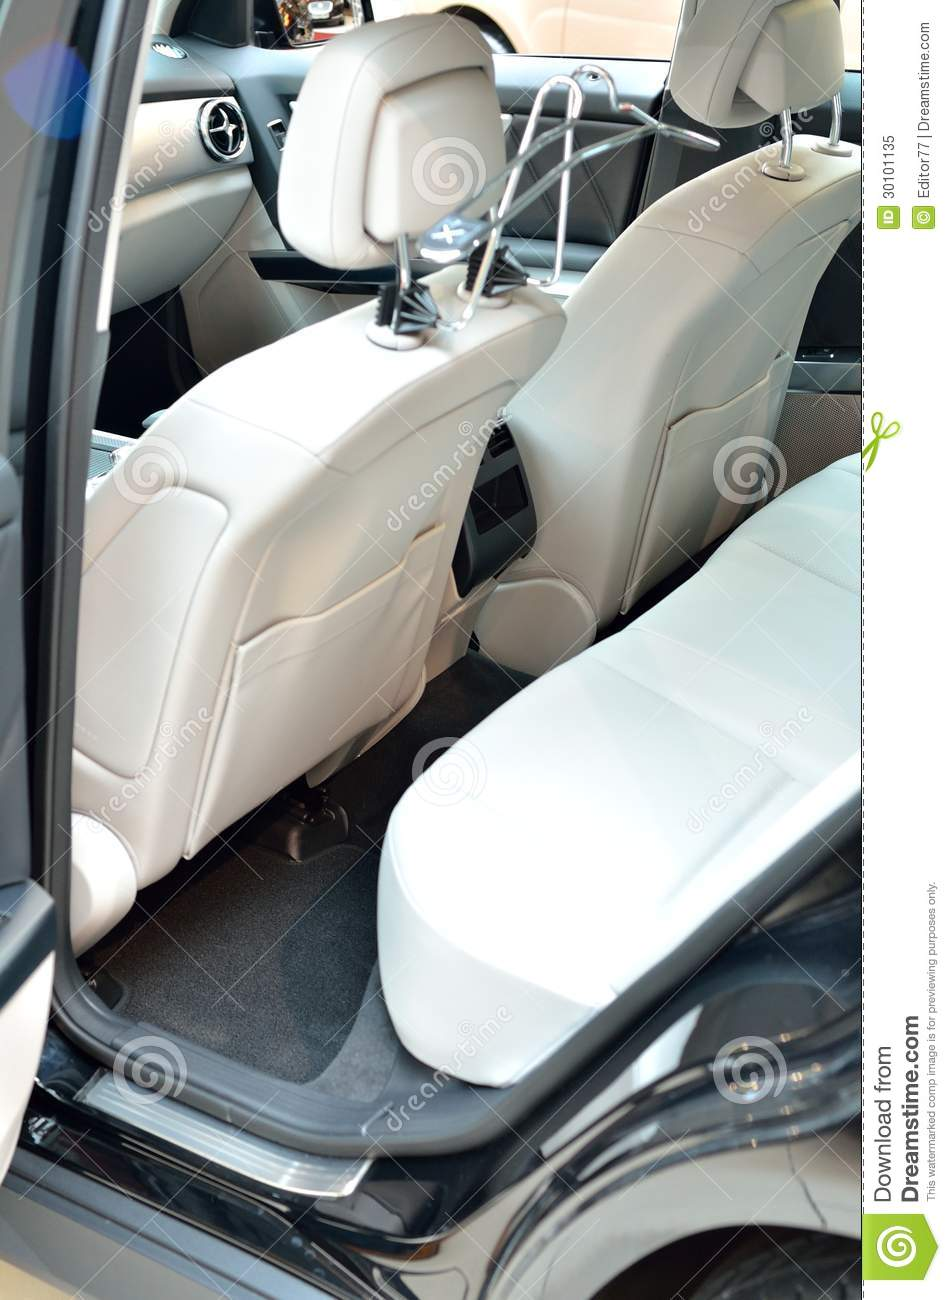 white car seats stock image image of interior gray 30101135. Black Bedroom Furniture Sets. Home Design Ideas